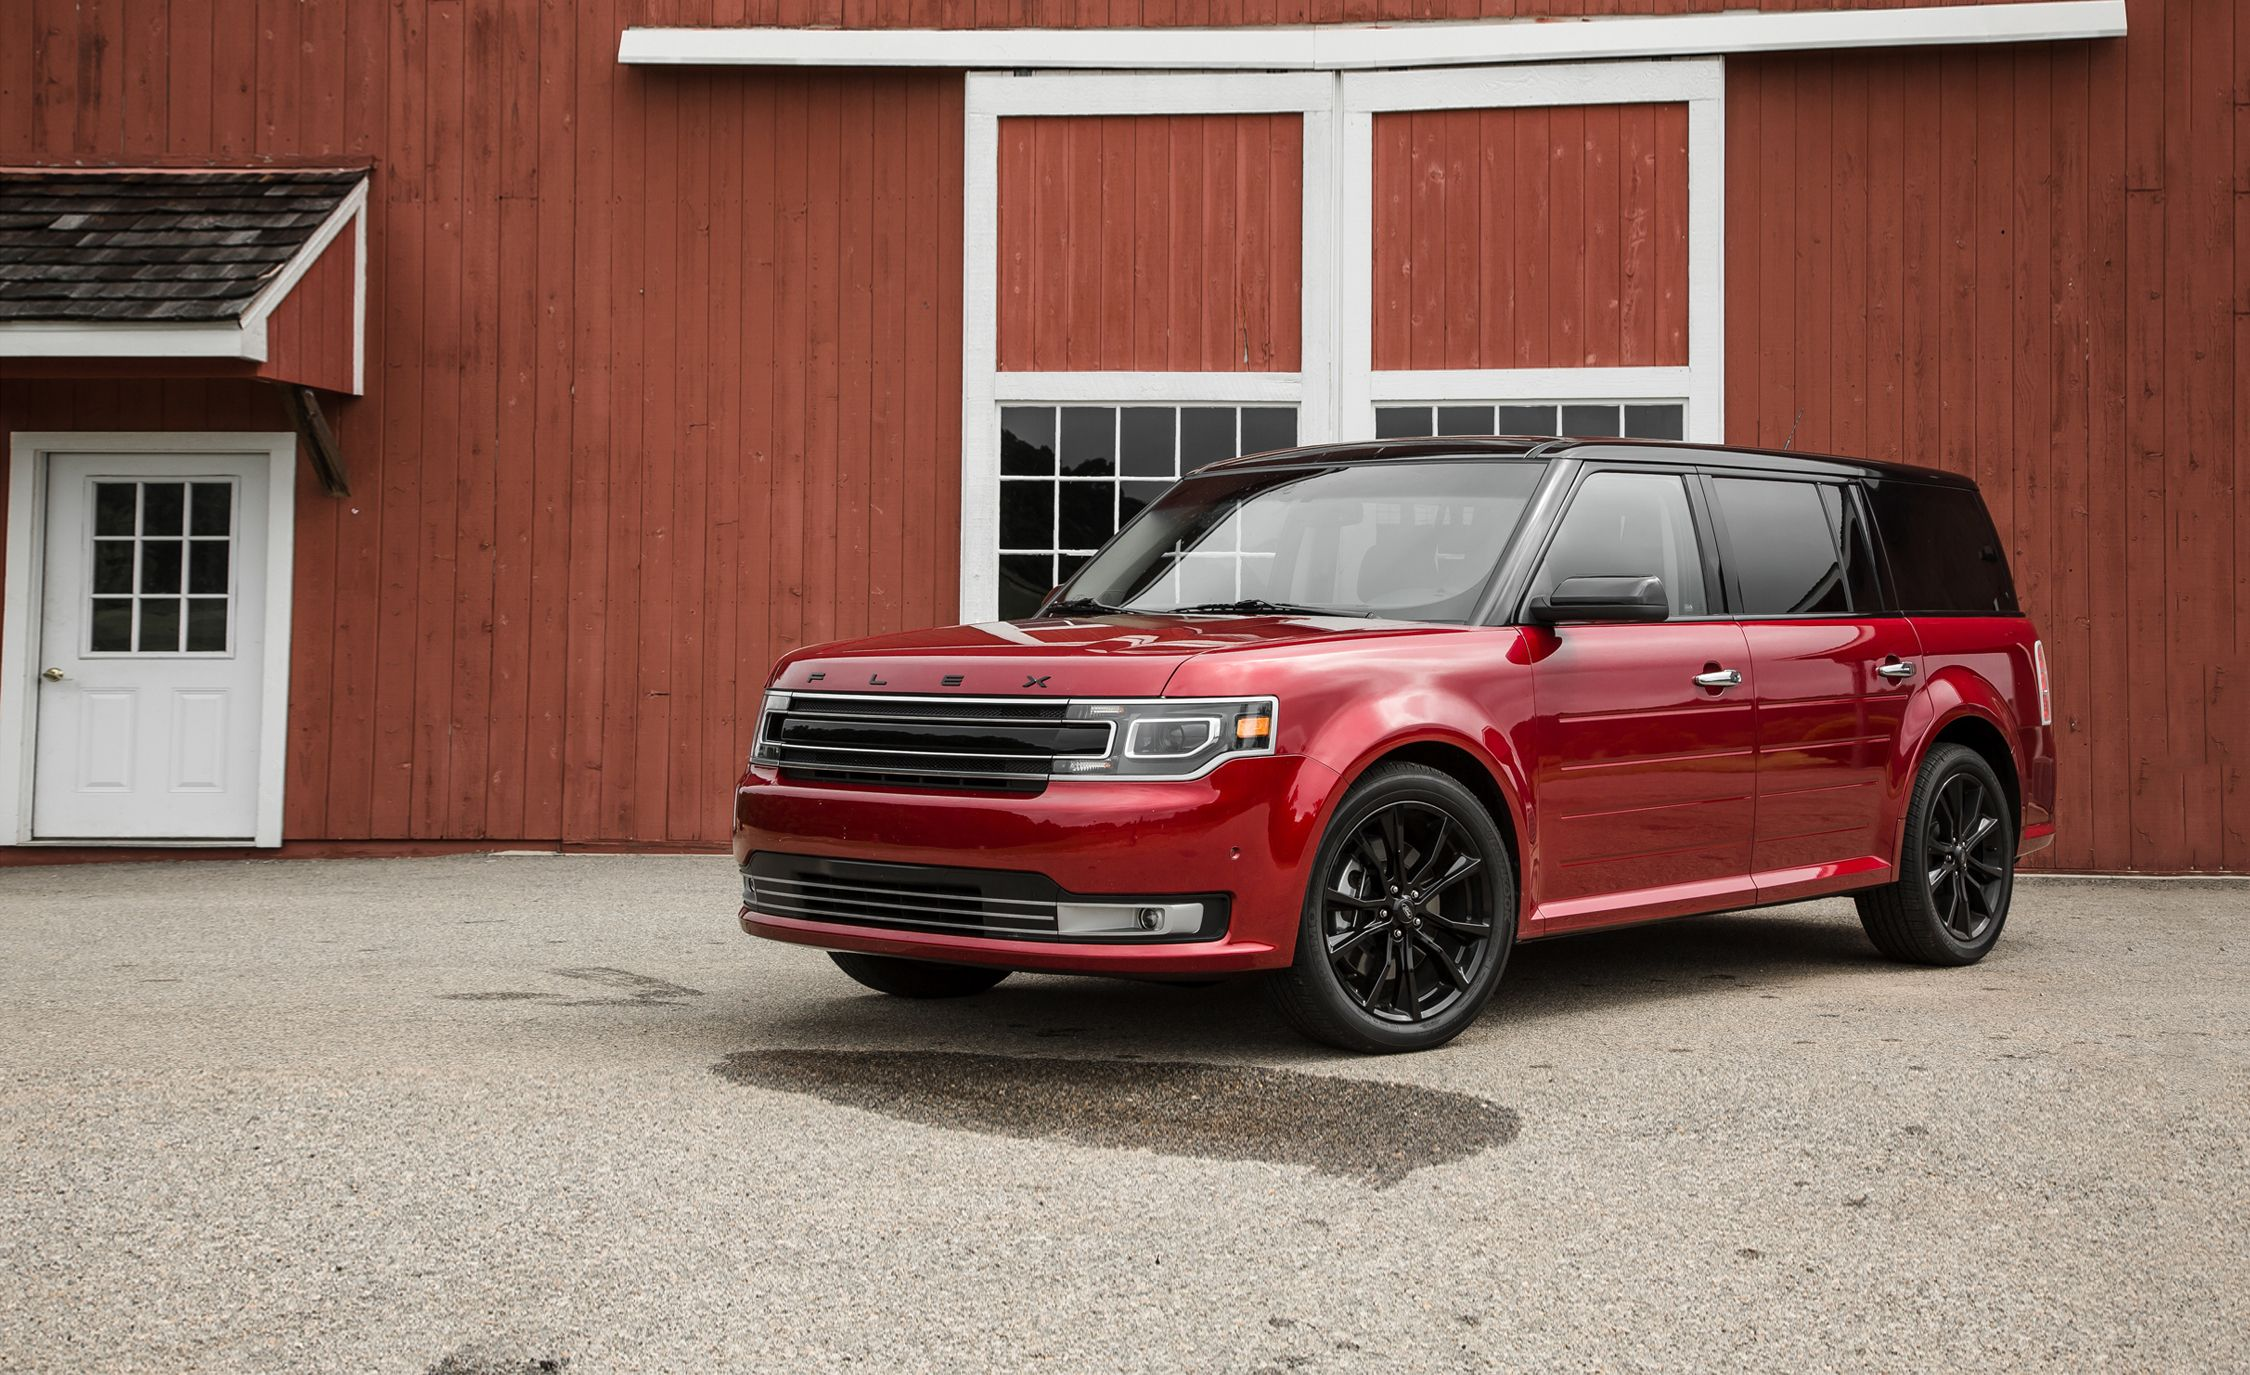 2019 Ford Flex Reviews Ford Flex Price Photos And Specs Car